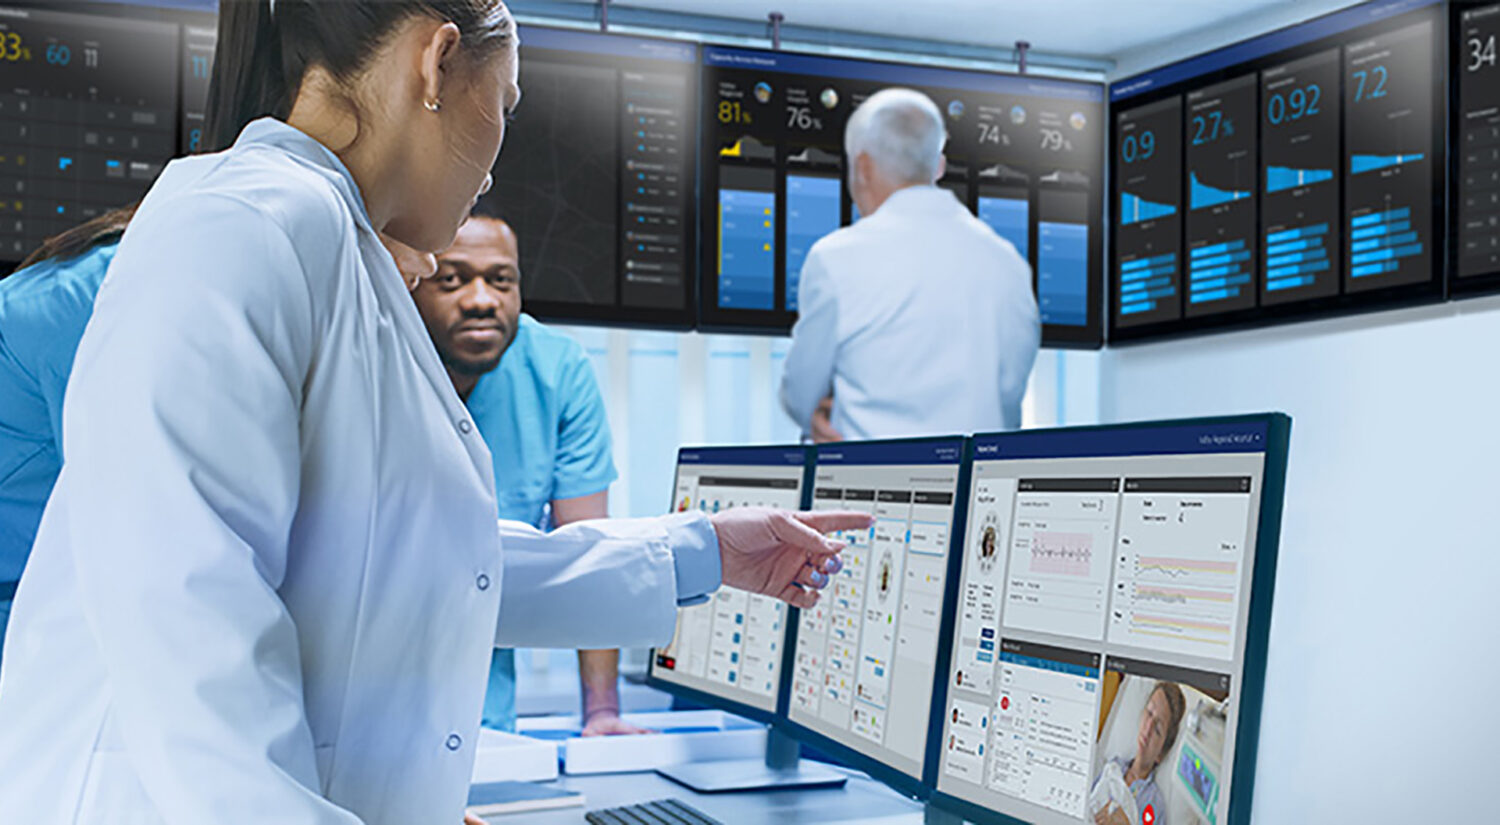 Philips Introduces HealthSuite Solutions to Drive Digital Transformation